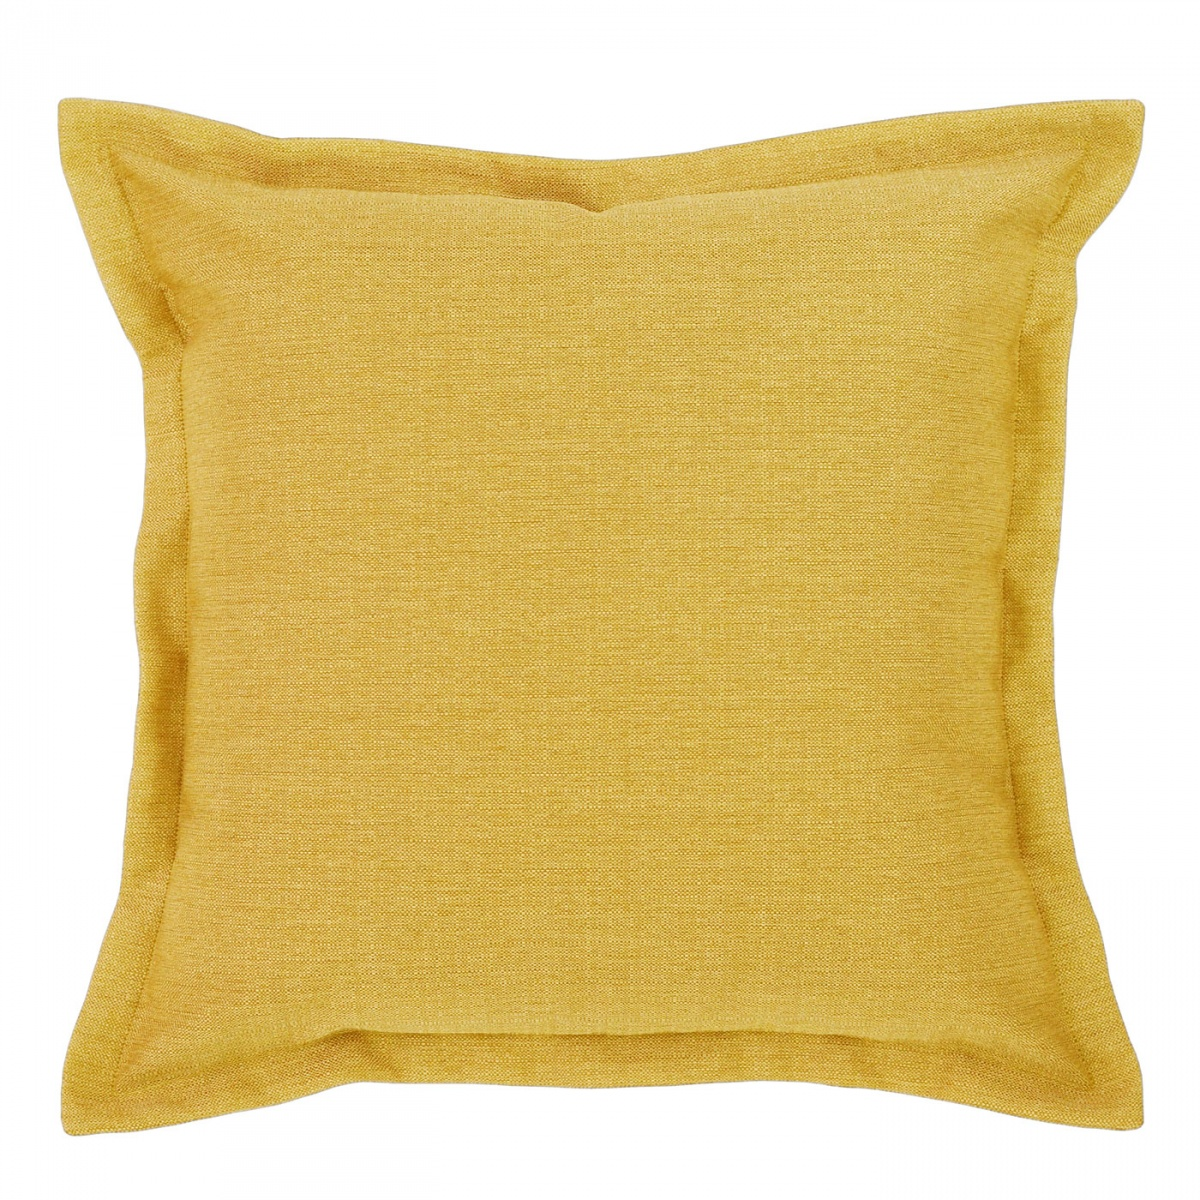 Vegas Buttercup Cushion with Flange - 45x45cm